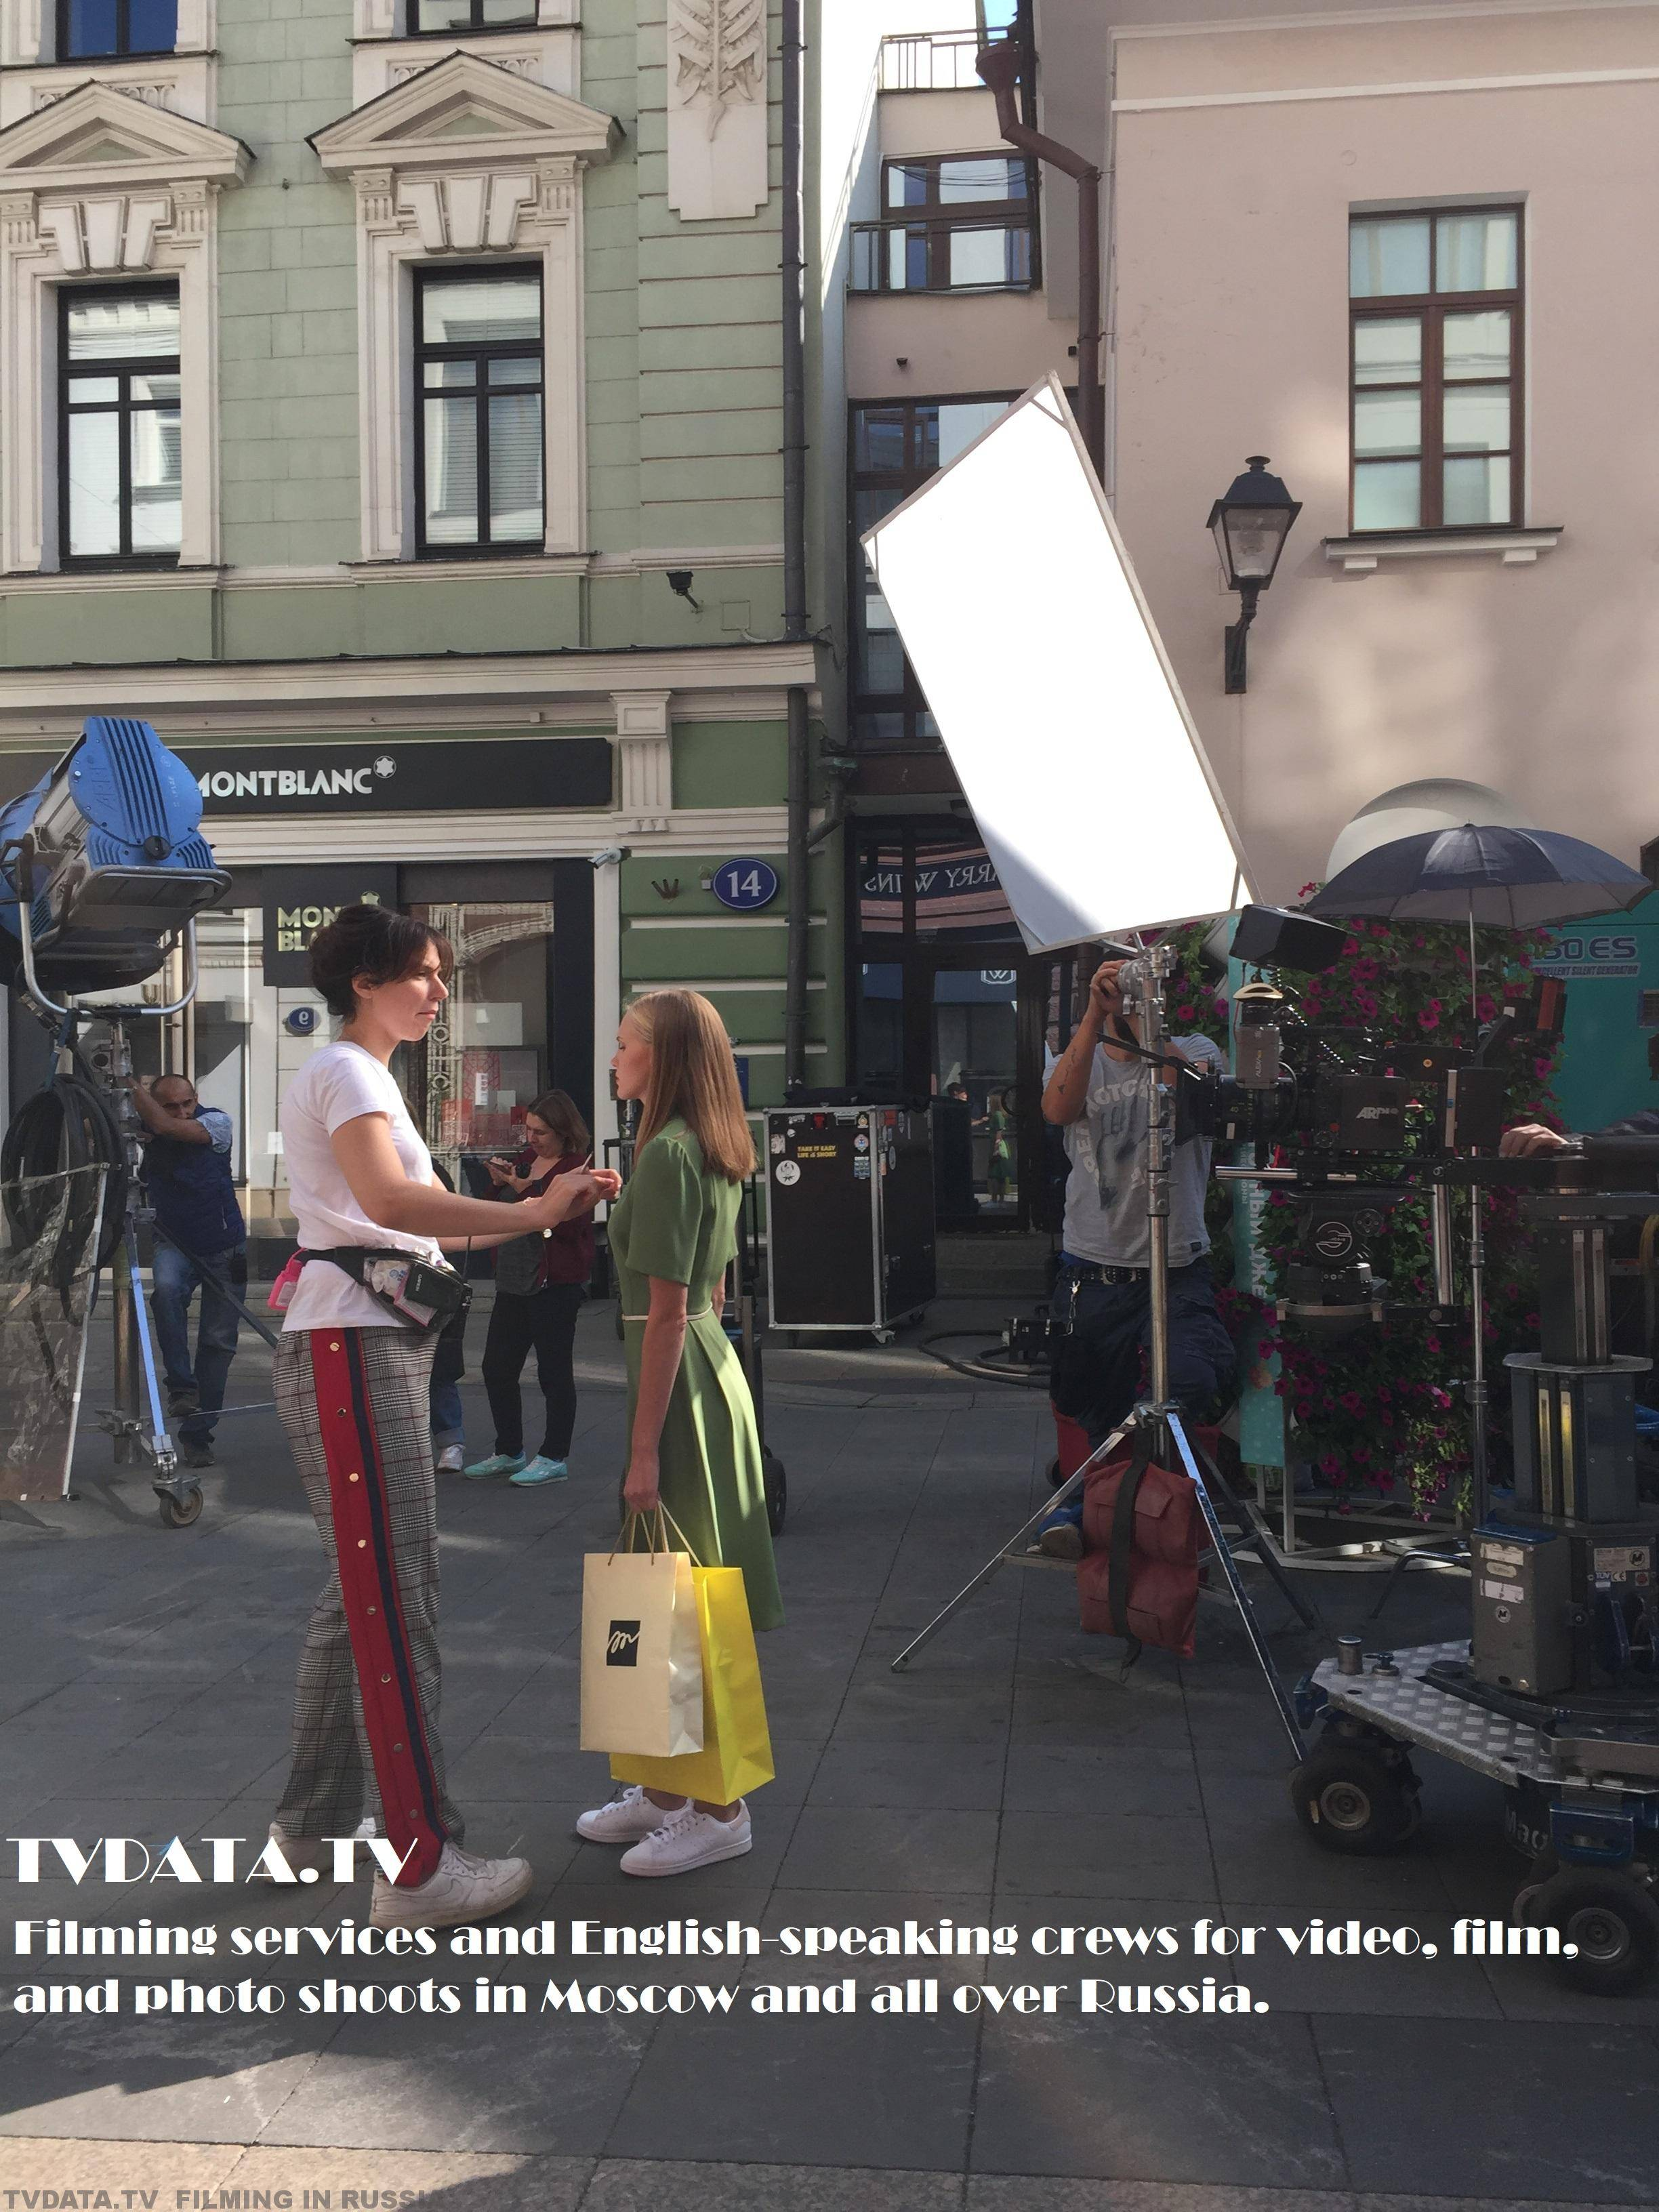 Filming services and English-speaking crews for video, film, and photo shoots in Moscow and all over Russia